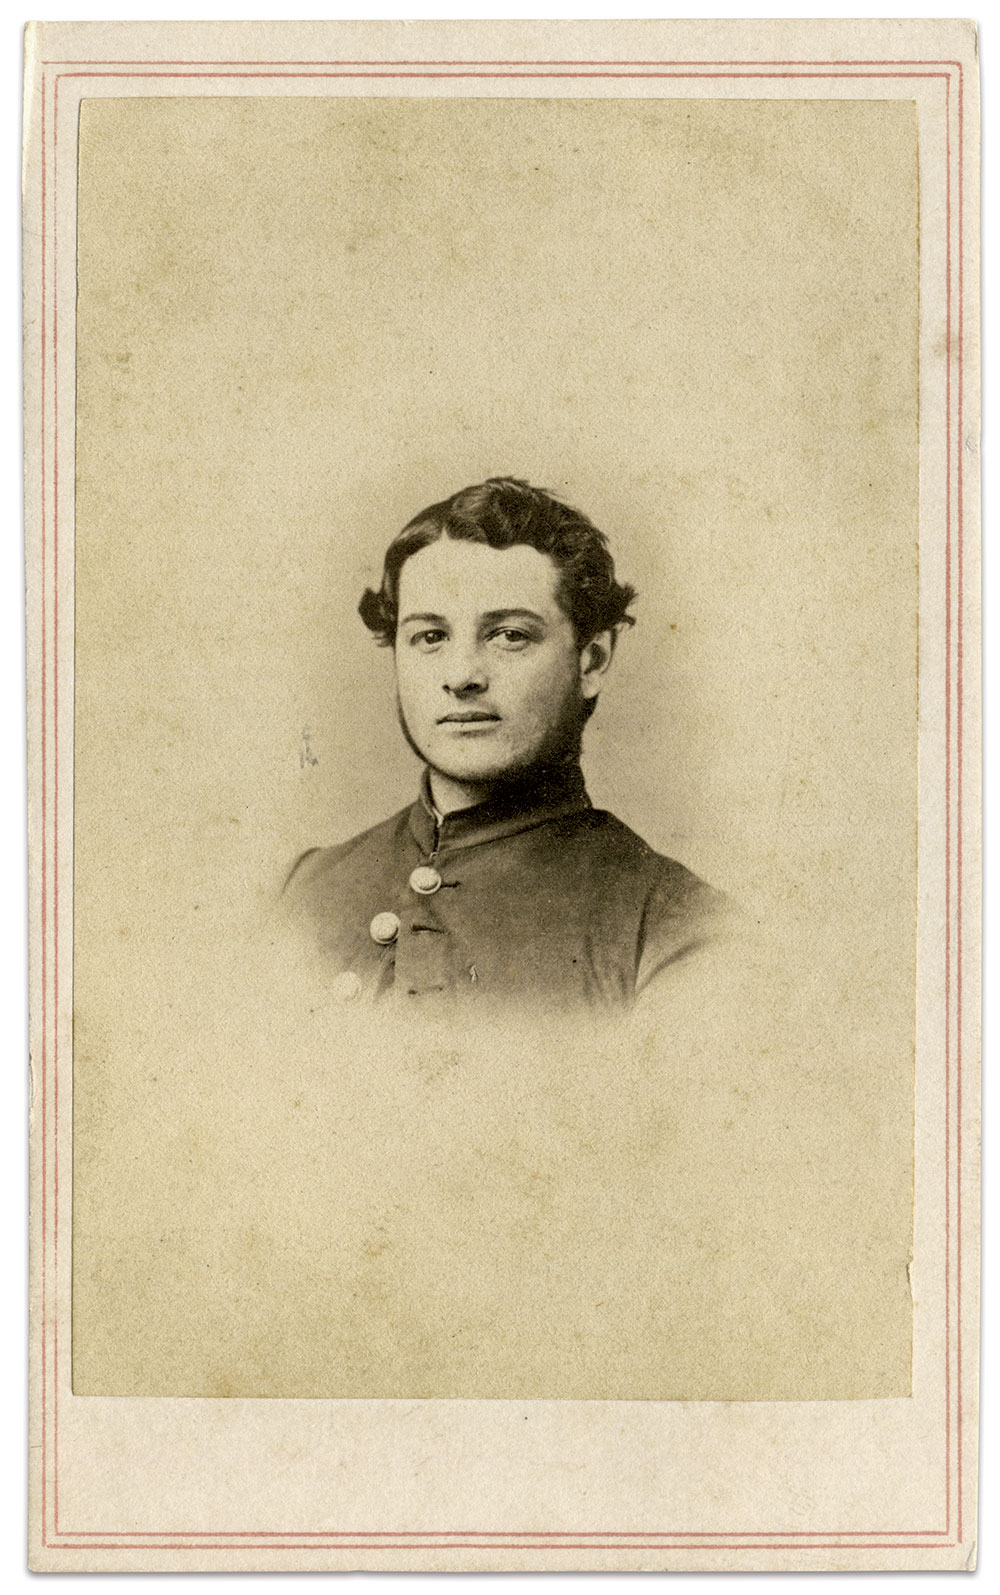 Carte de visite by J.A. Williams at Lovell General Hospital in Portsmouth Grove, R.I. John Gibson Collection.